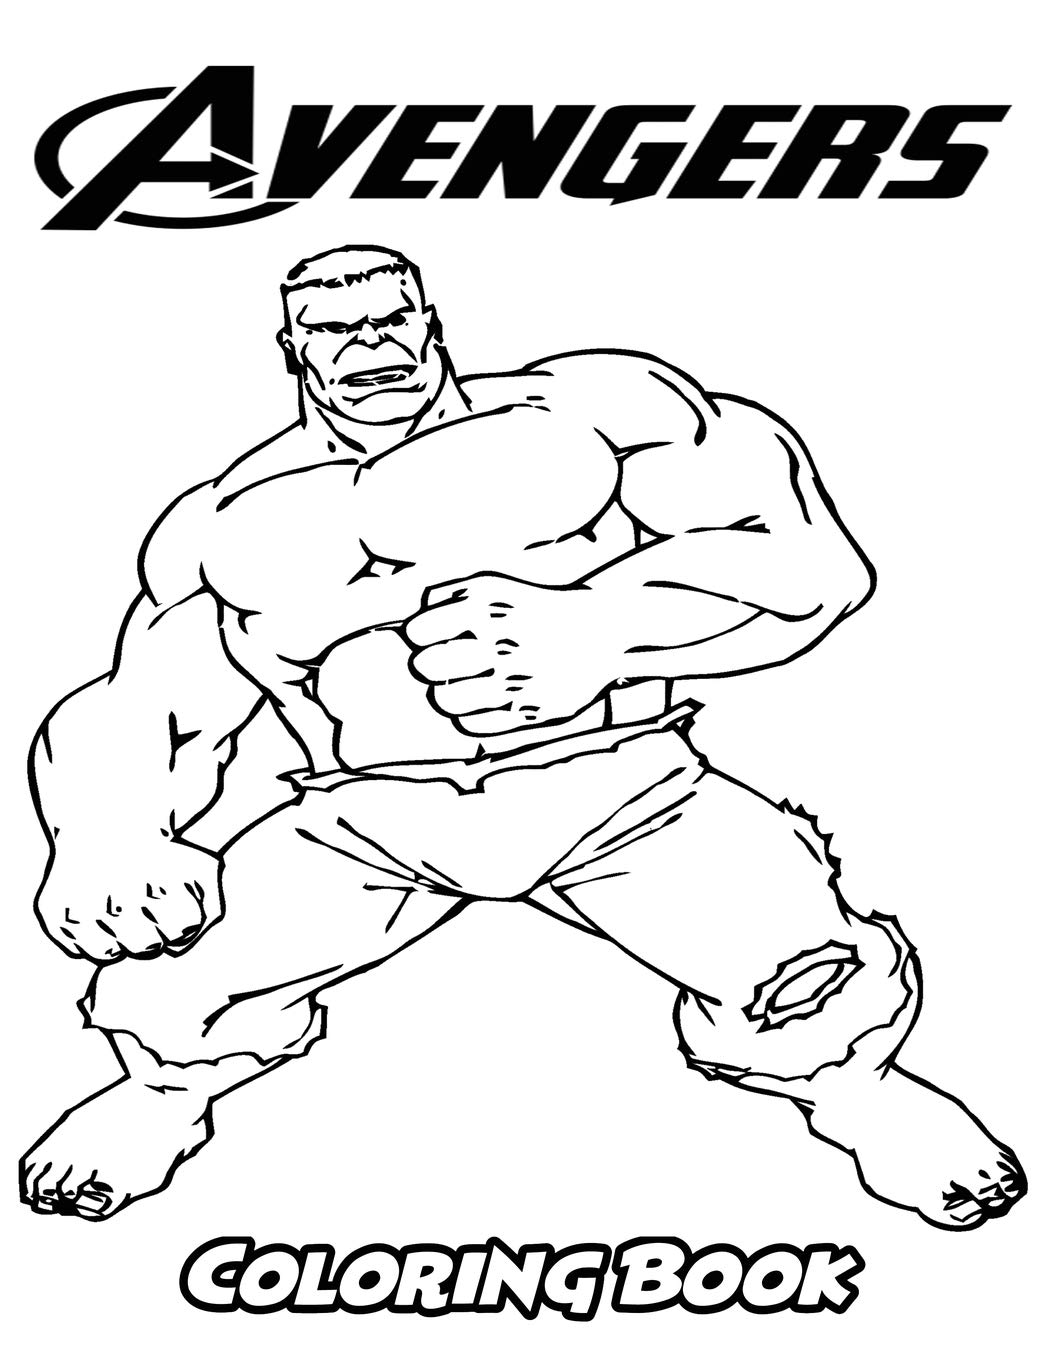 920 Top Avengers Coloring Pages For Adults , Free HD Download